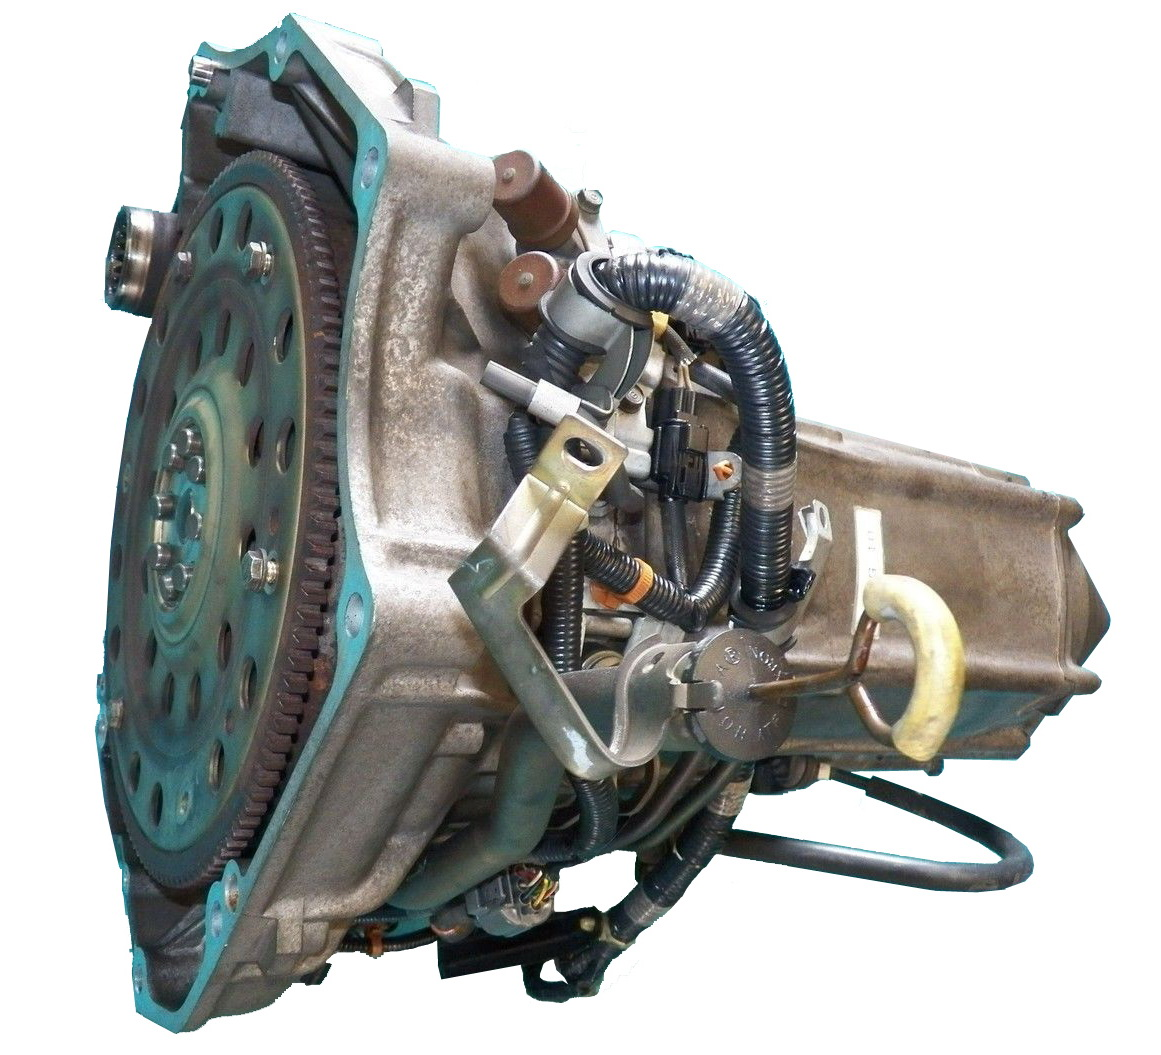 M5HA Transmission Parts, Repair Guidelines, Problems, Manuals